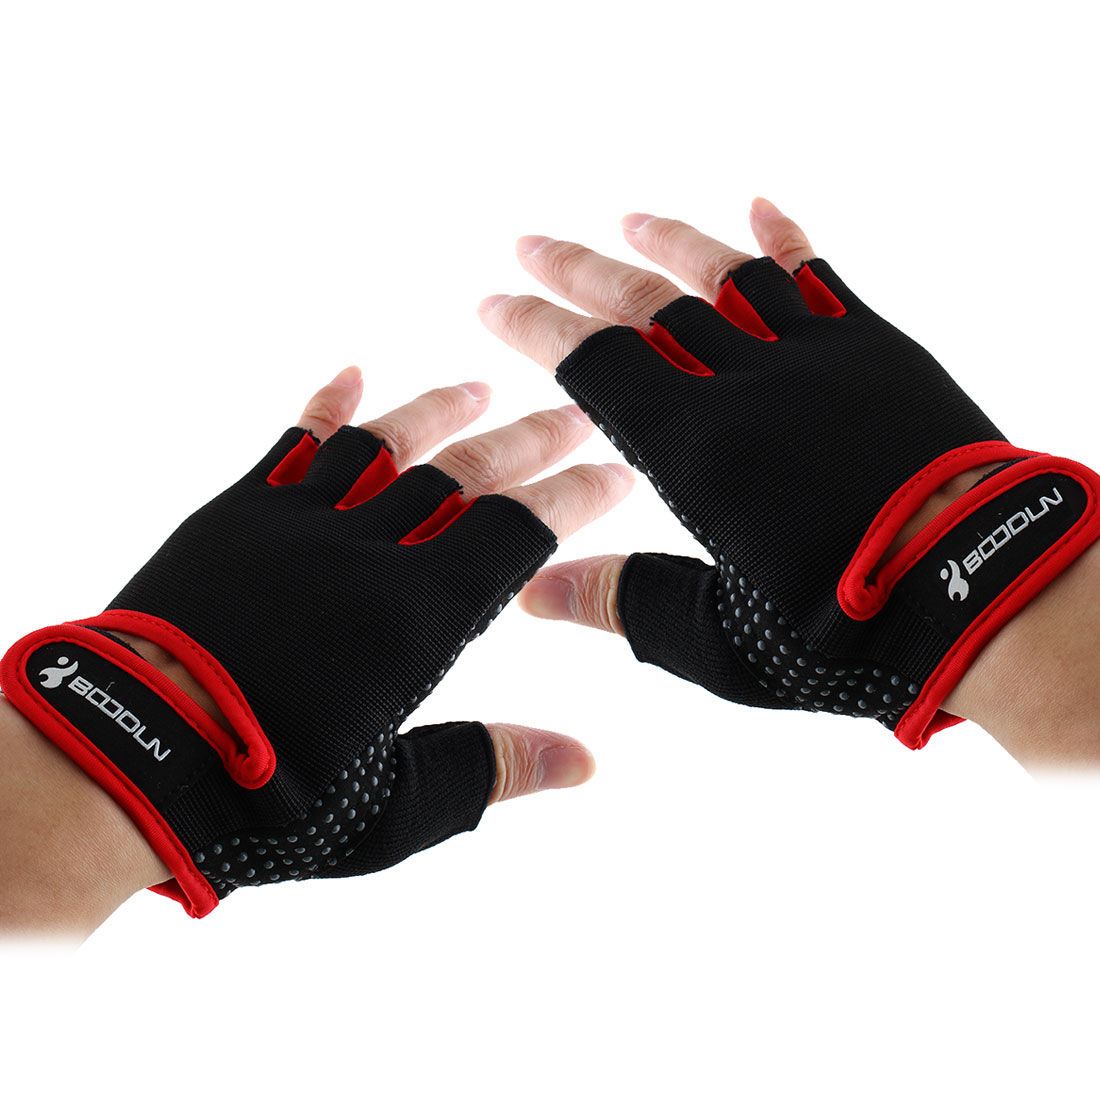 BOODUN Authorized Adult Unisex Spandex Adjustable Sports Training Workout Mittens Fitness Gloves Red M Pair